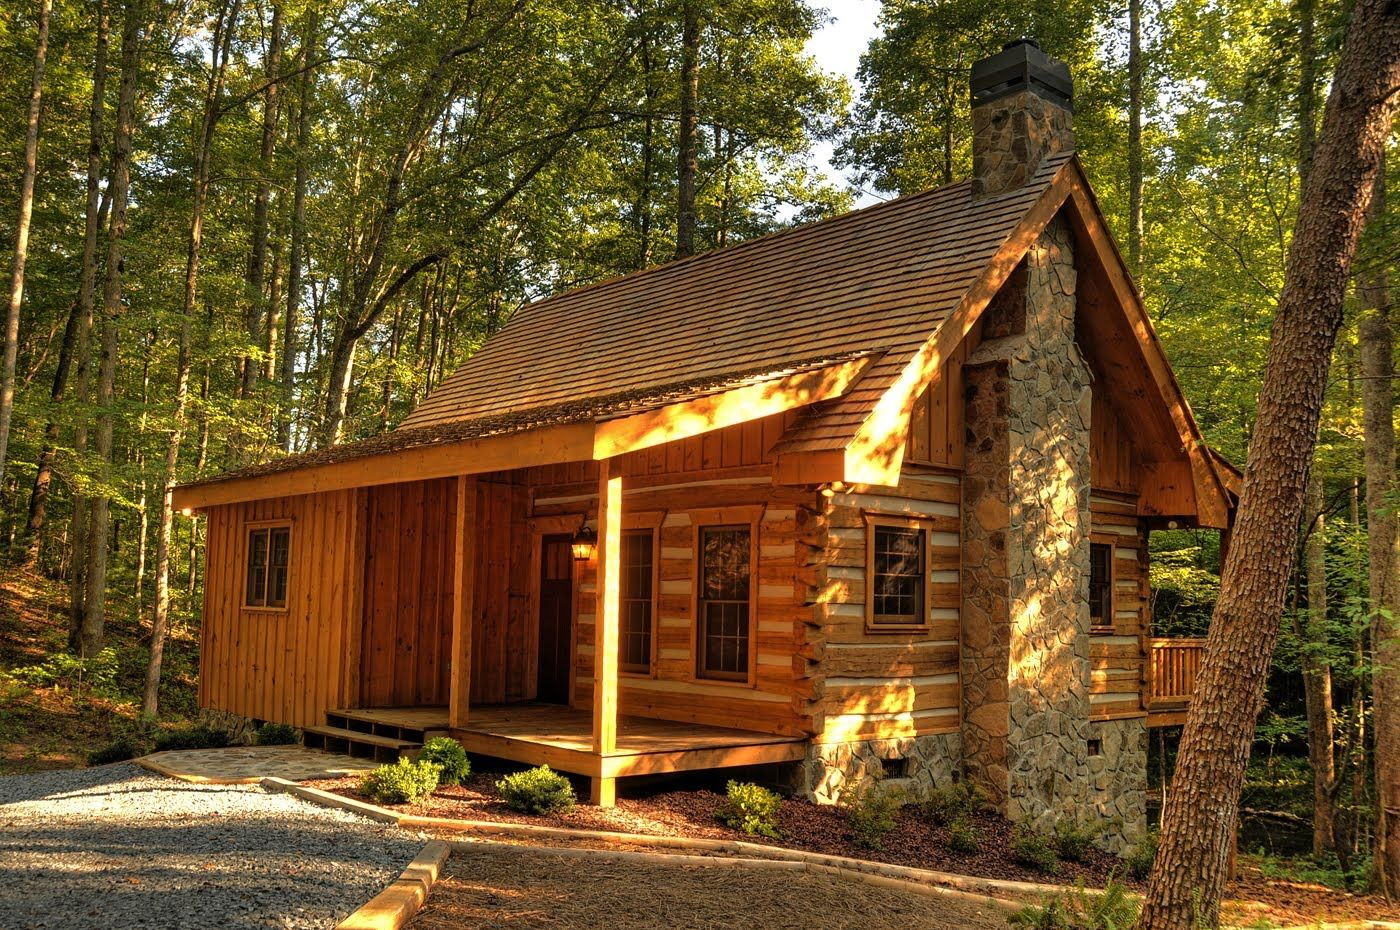 Pin by Renn Tyhychi on Tiny Homes Tiny house cabin, Best